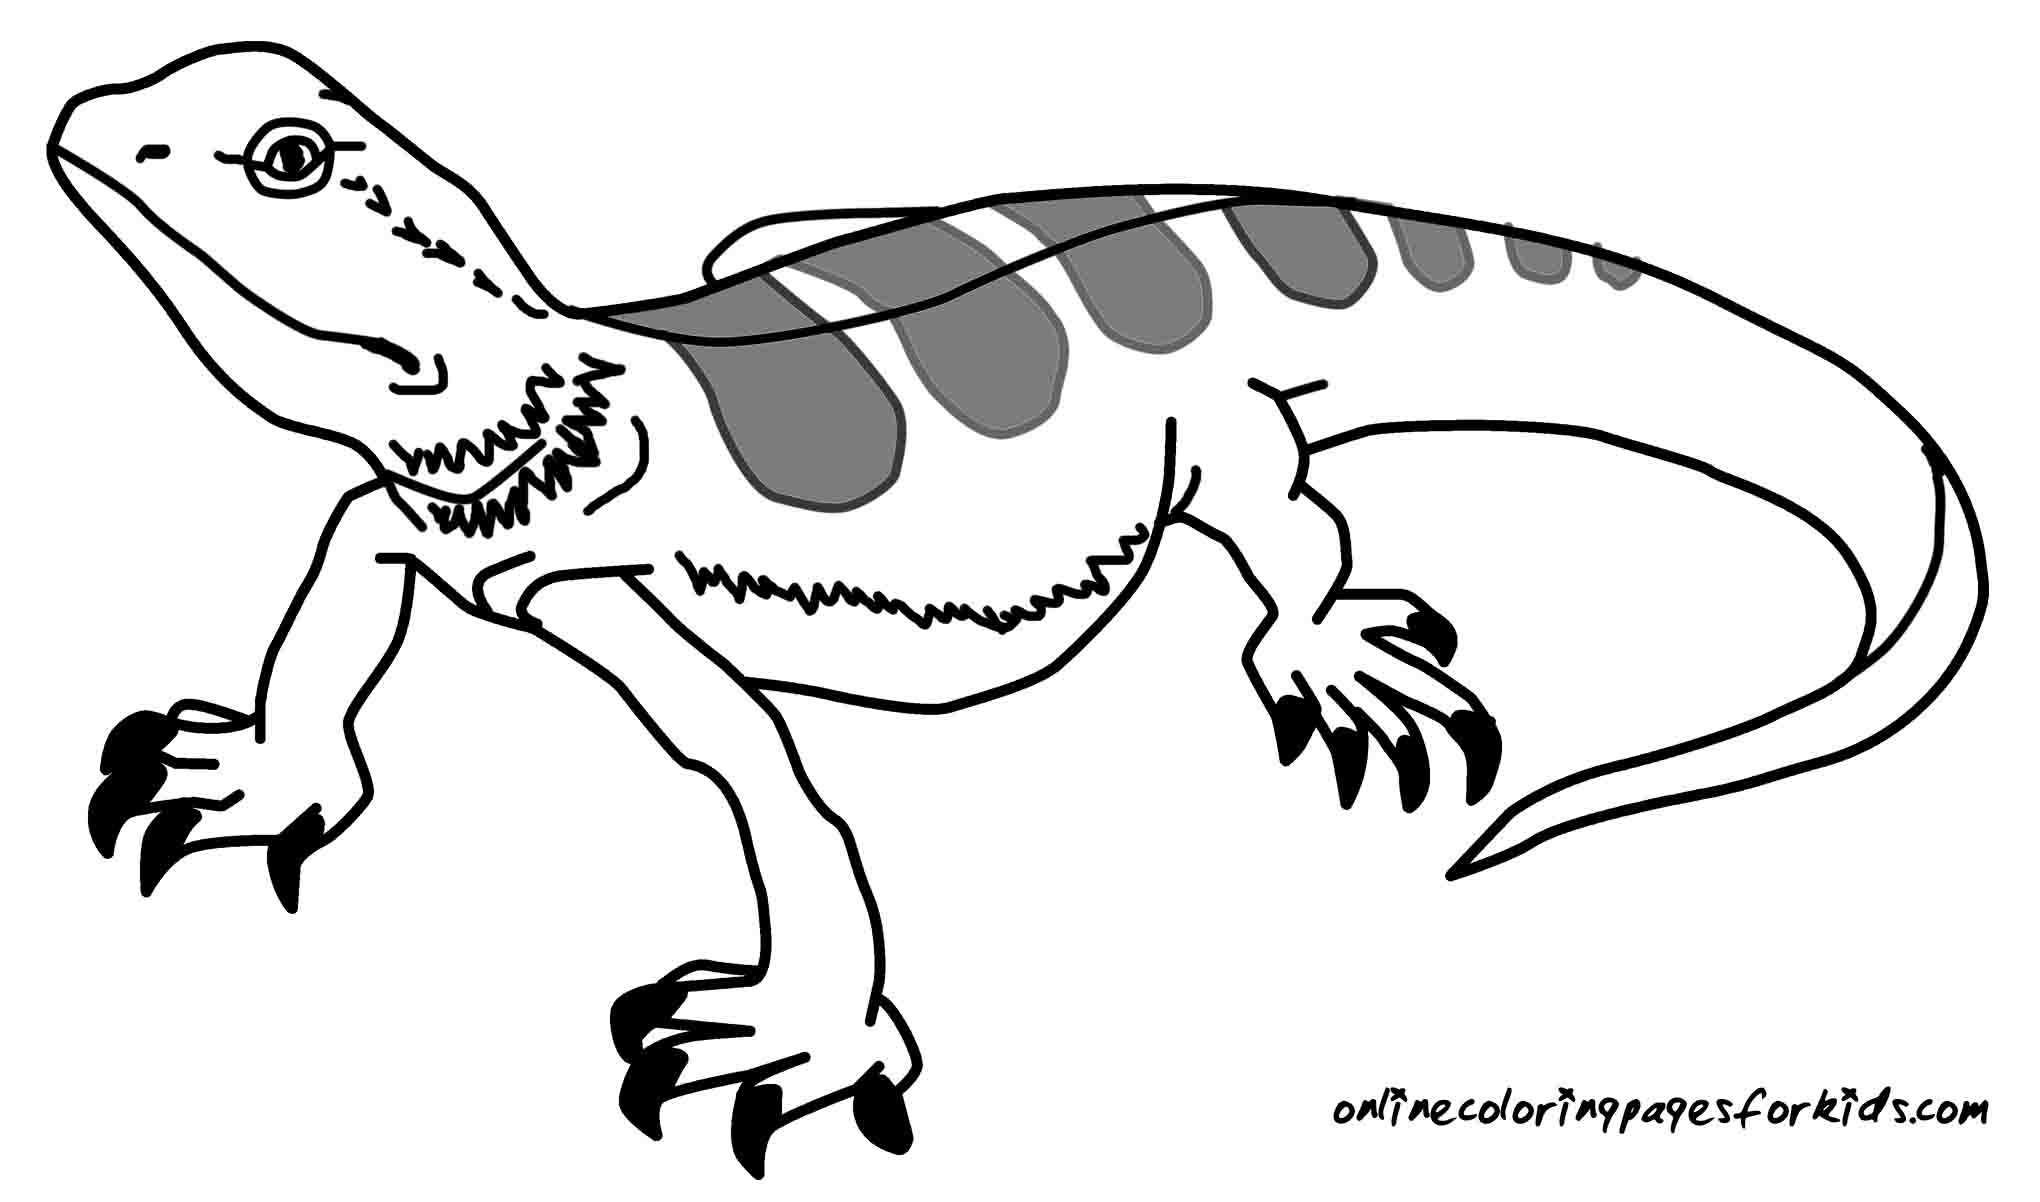 free lizard coloring pages free lizard coloring pages for adults printable to coloring pages free lizard